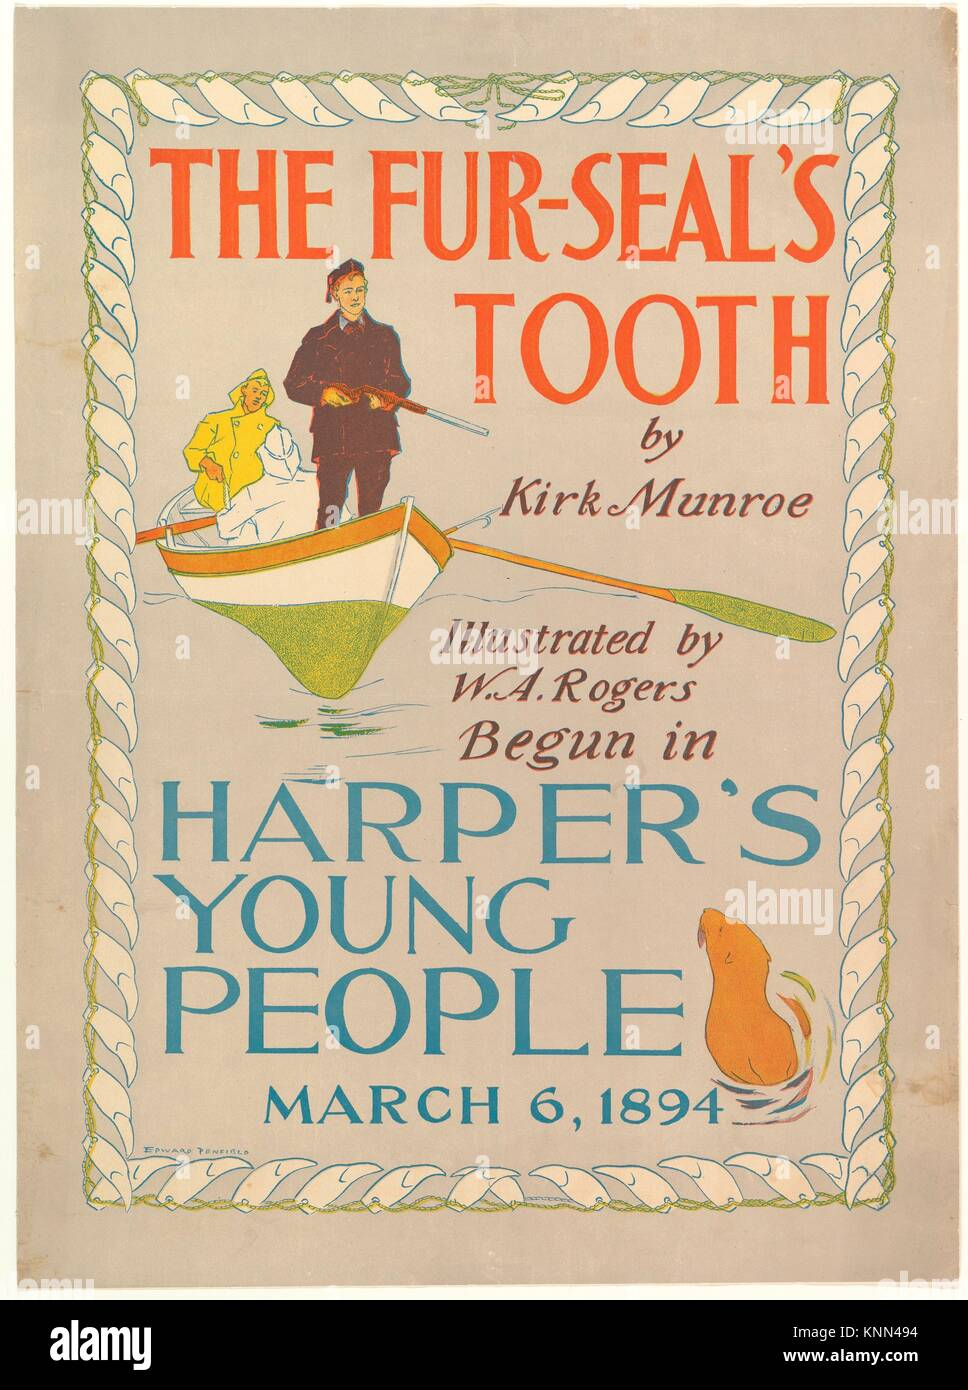 Harper's Young People: The Fur-Seal's Tooth by Kirk Monroe, March 6, 1894. Artist: Edward Penfield (American, - Stock Image